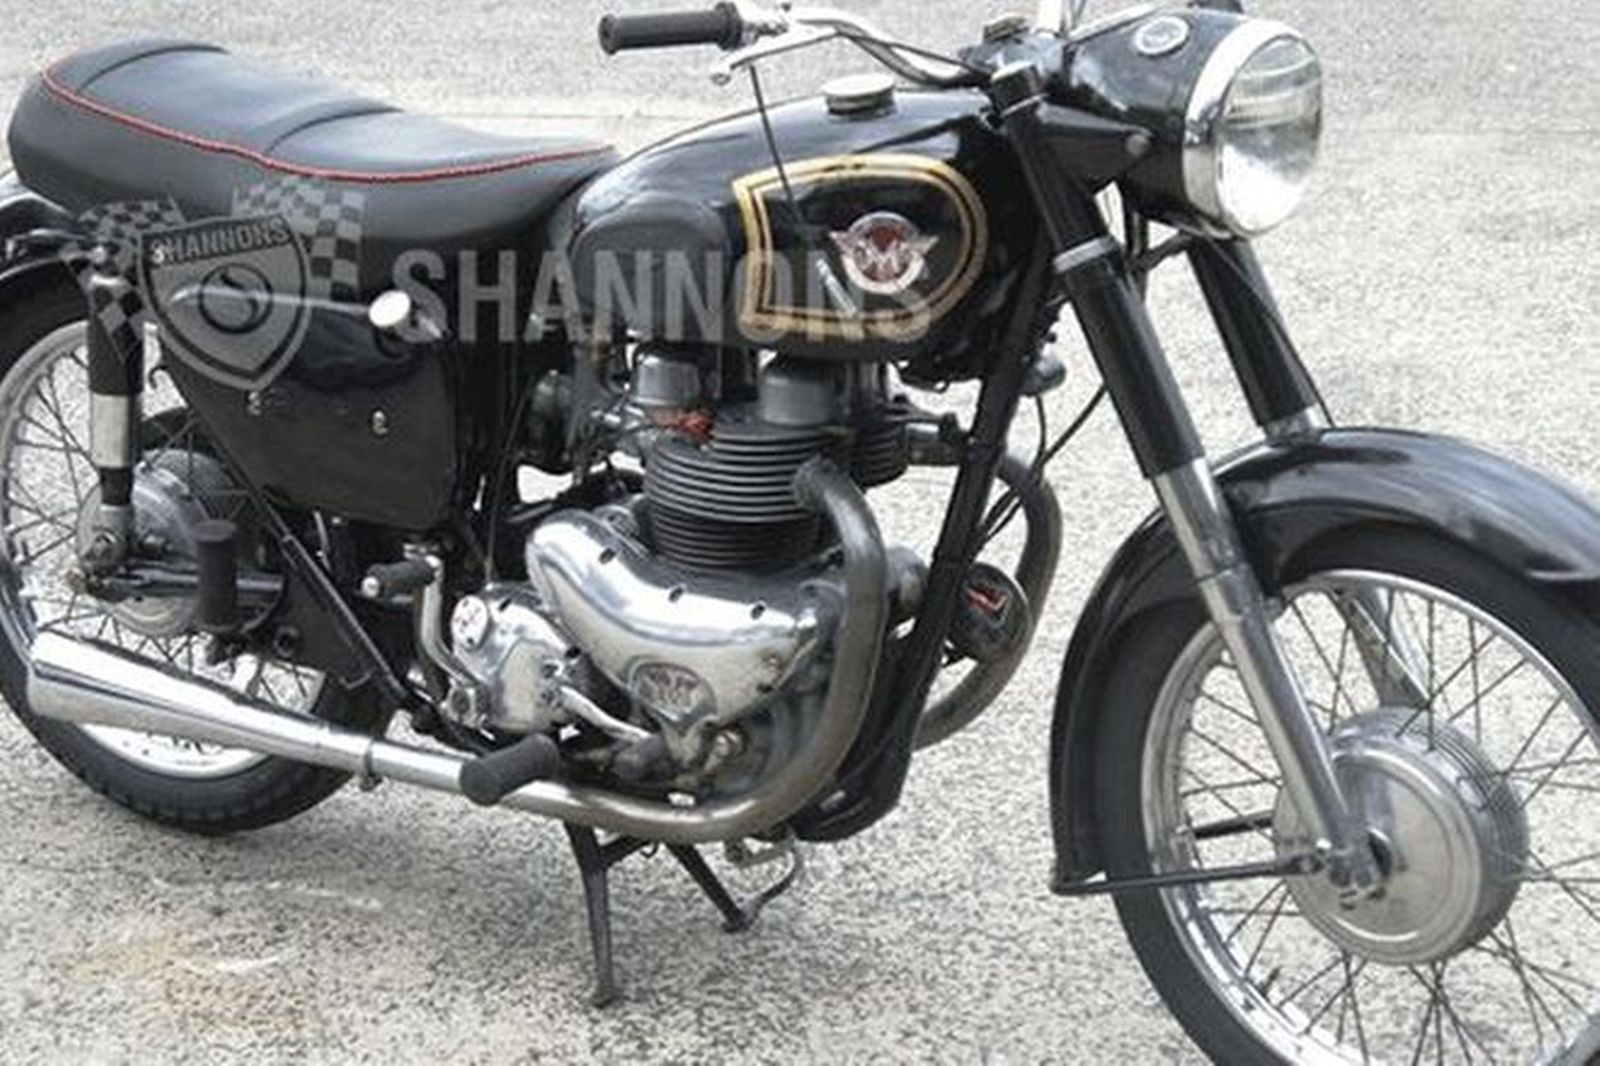 Matchless g 11 csr for sale 1958 on car and classic uk c544589 - Matchless G11 600 Clubman Motorcycle